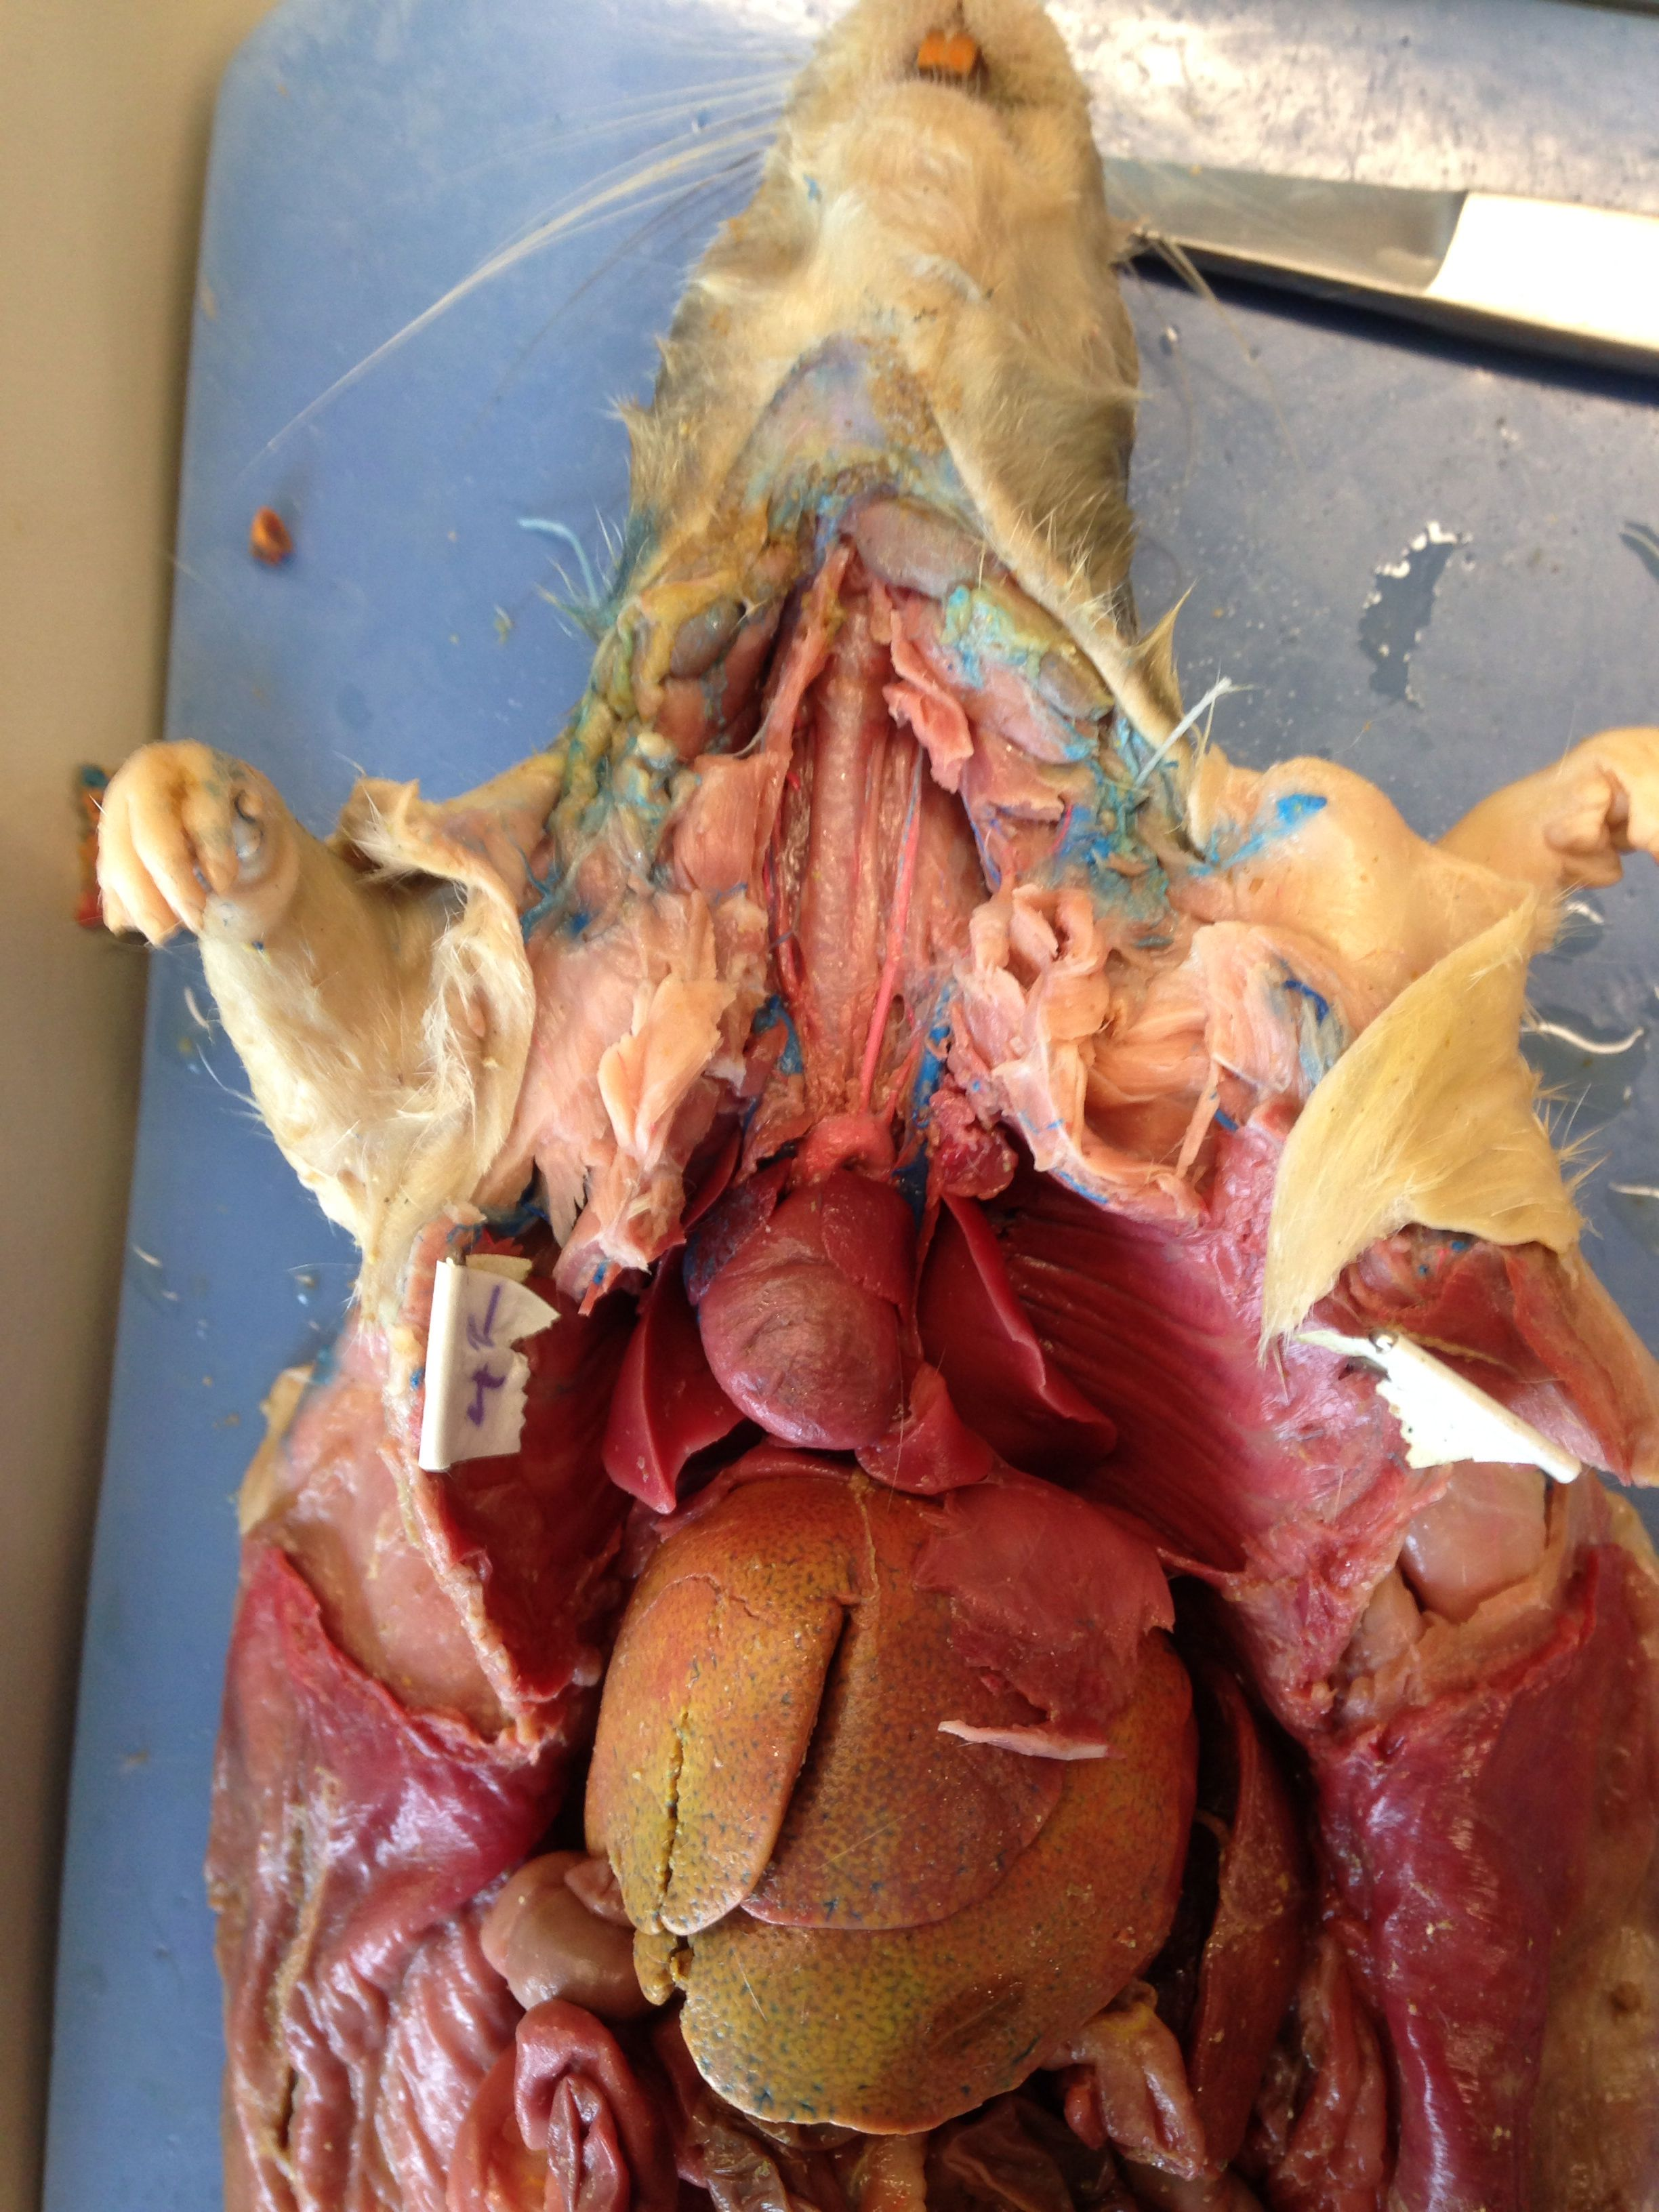 Lovely Rat Dissection